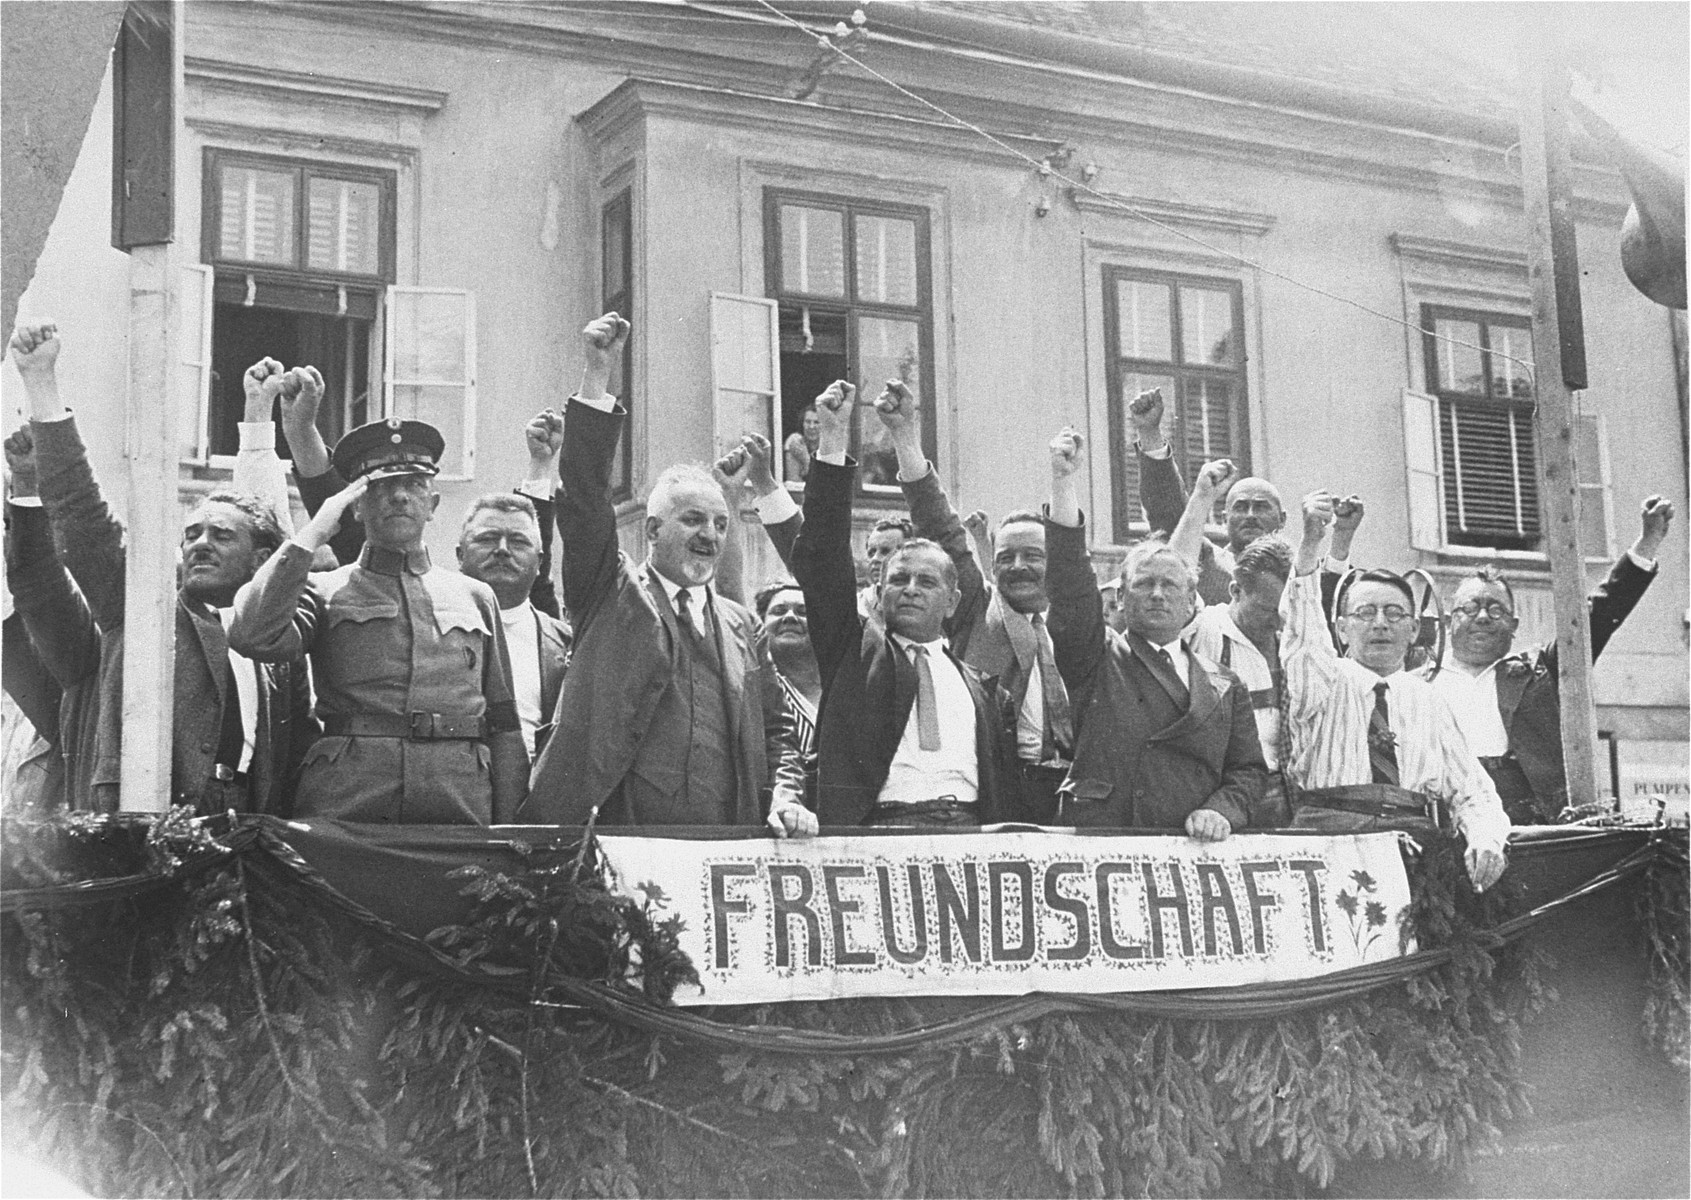 "The leader of Austria's Social Democrats salutes the Republican ""Schutzbund"" during its demonstration against the Nazi storming of the Social-Democratic party house the previous week.   Pictured from left to right, are Major Eifler, Military Commander of the Republican ""Schutzbund""; Speiser, Town Councillor; Otto Bauer, National Deputy; Dr. Deutsch, leader of the Social Democratic Party; and Till, Commander of the ""Schutzbund""."